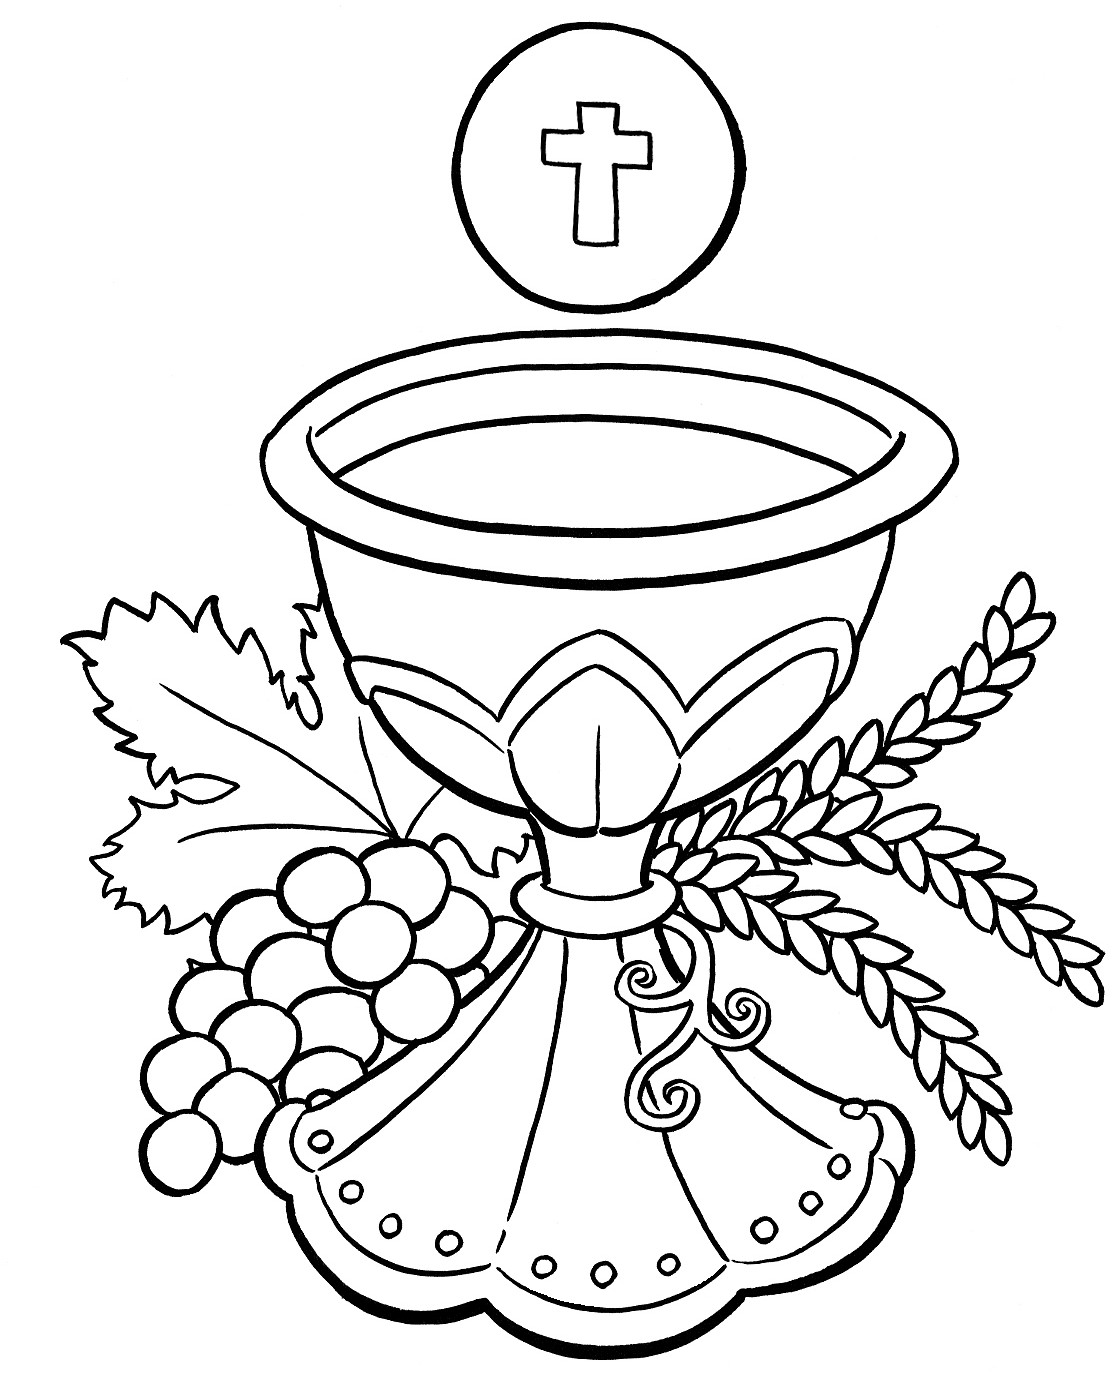 Communion clipart black and white 7 » Clipart Station.